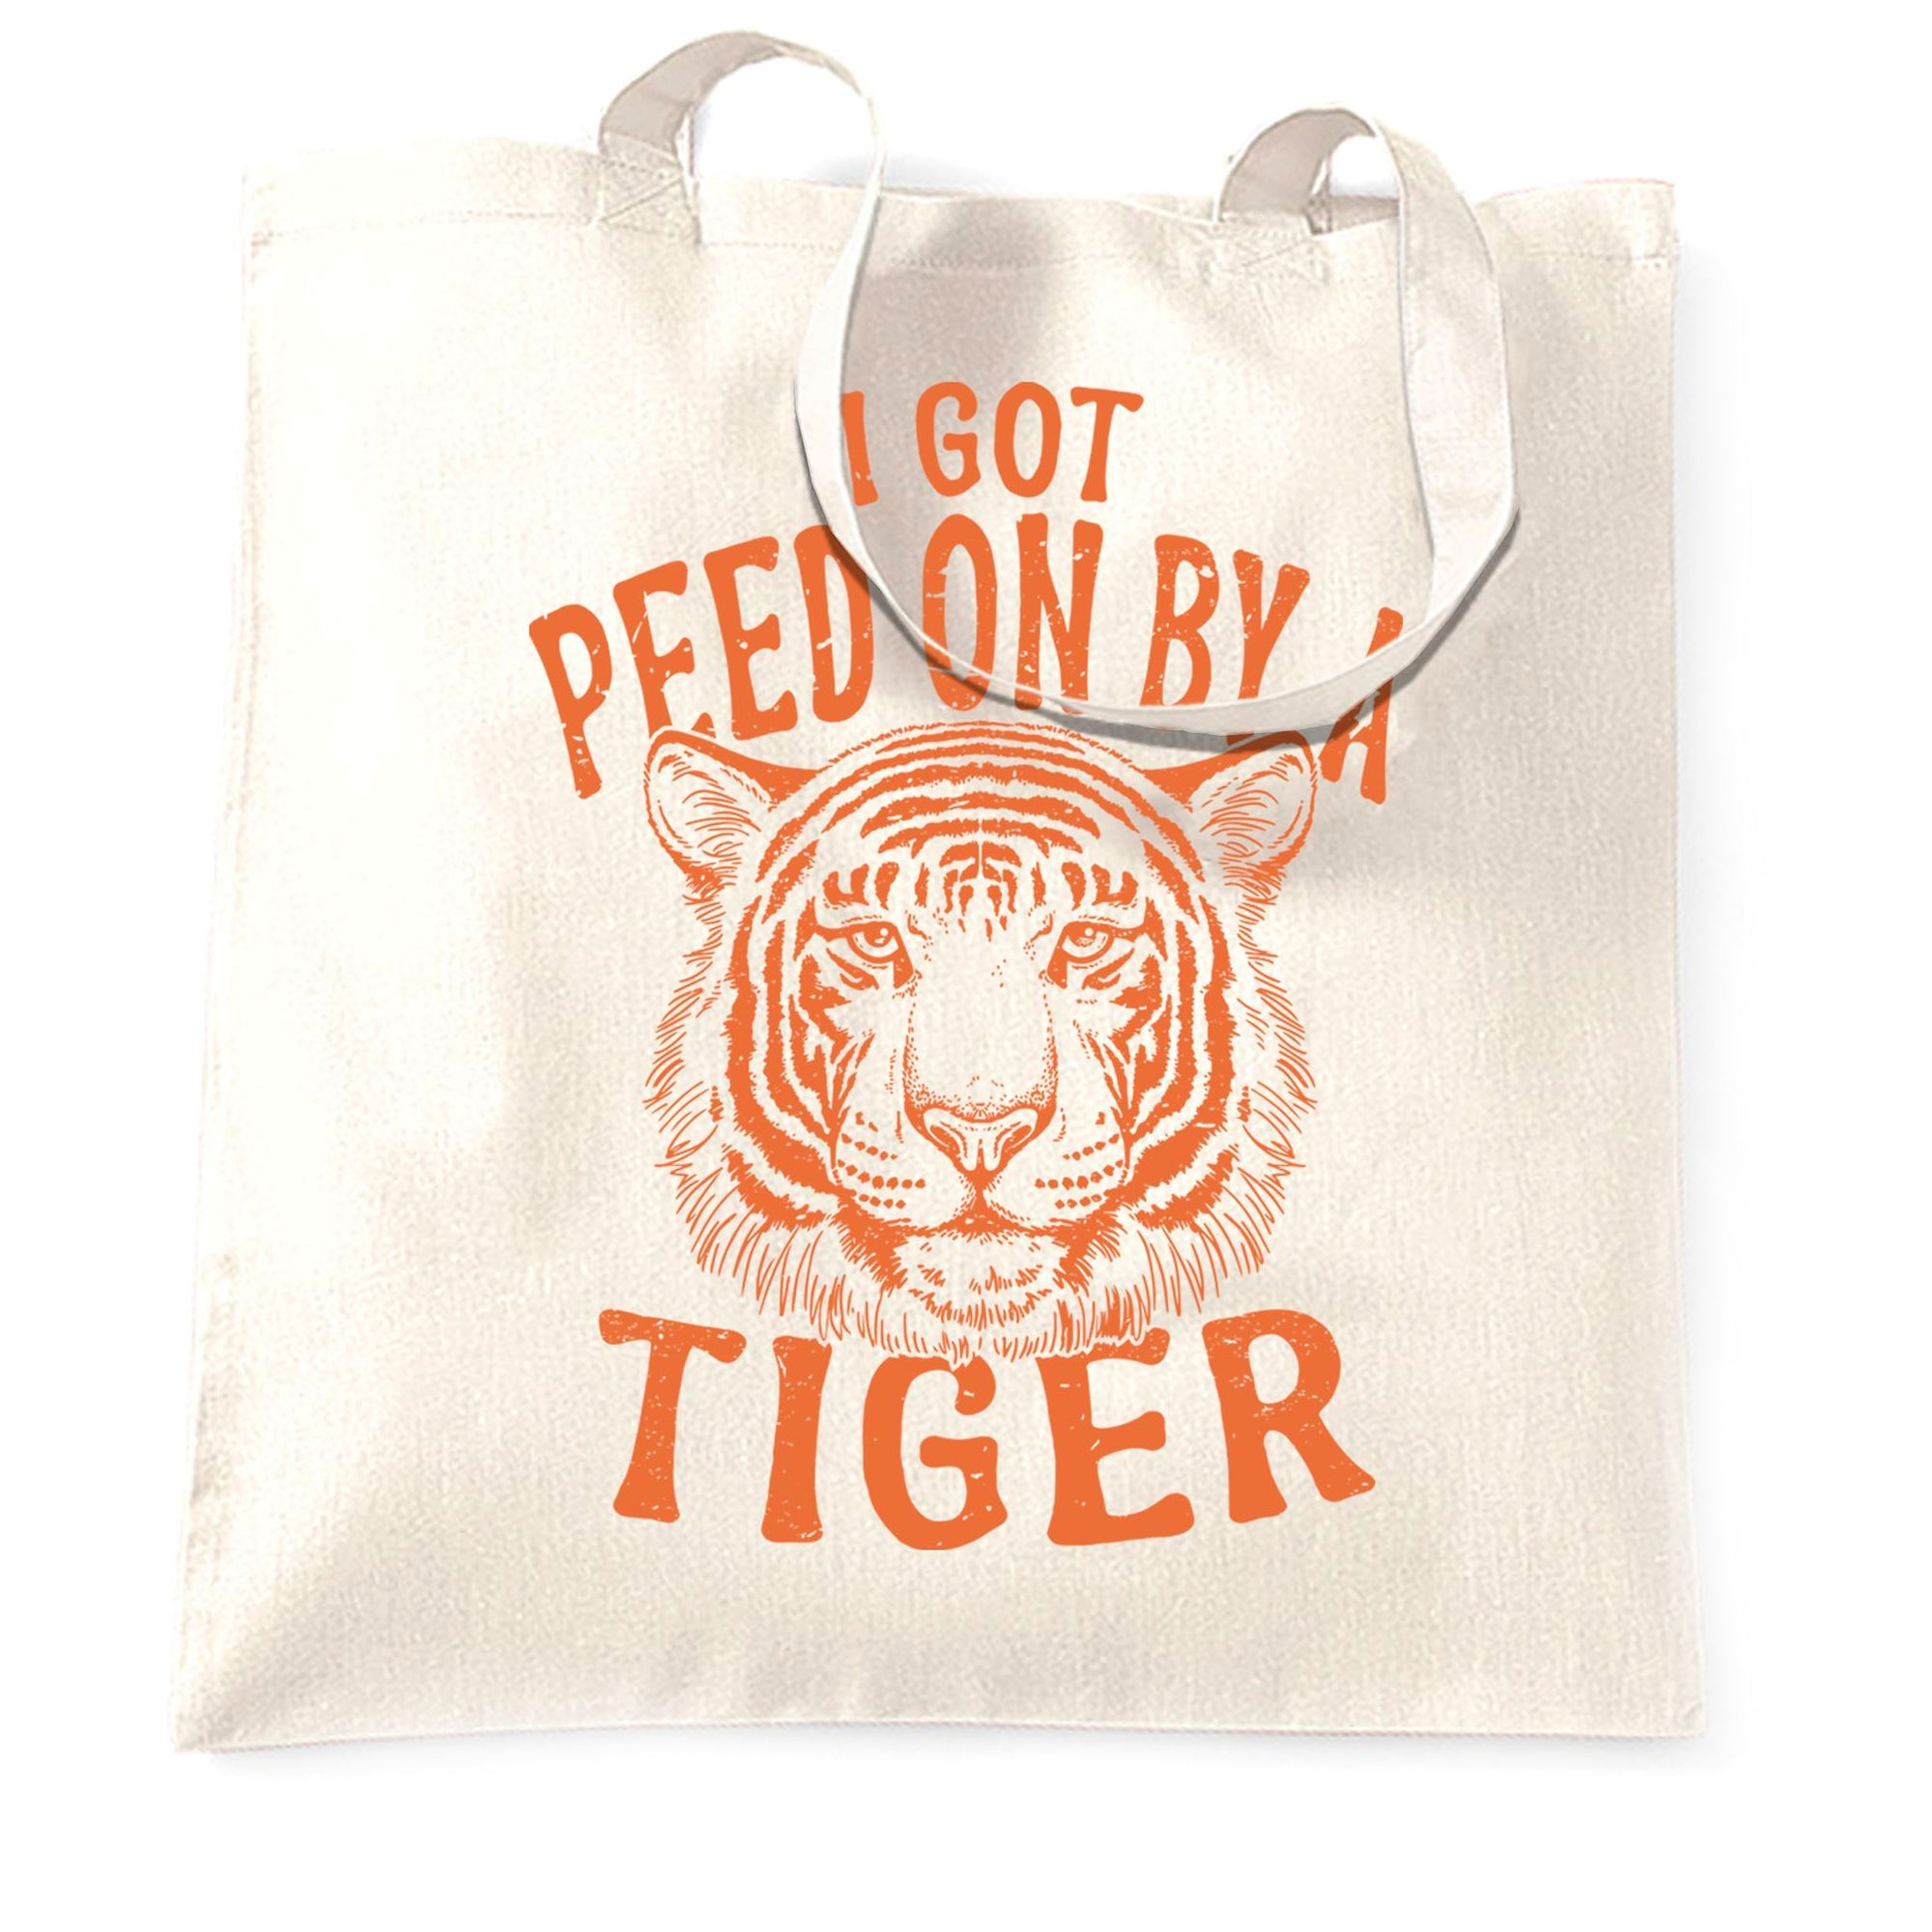 Funny Tote Bag I Got Peed On By A Tiger